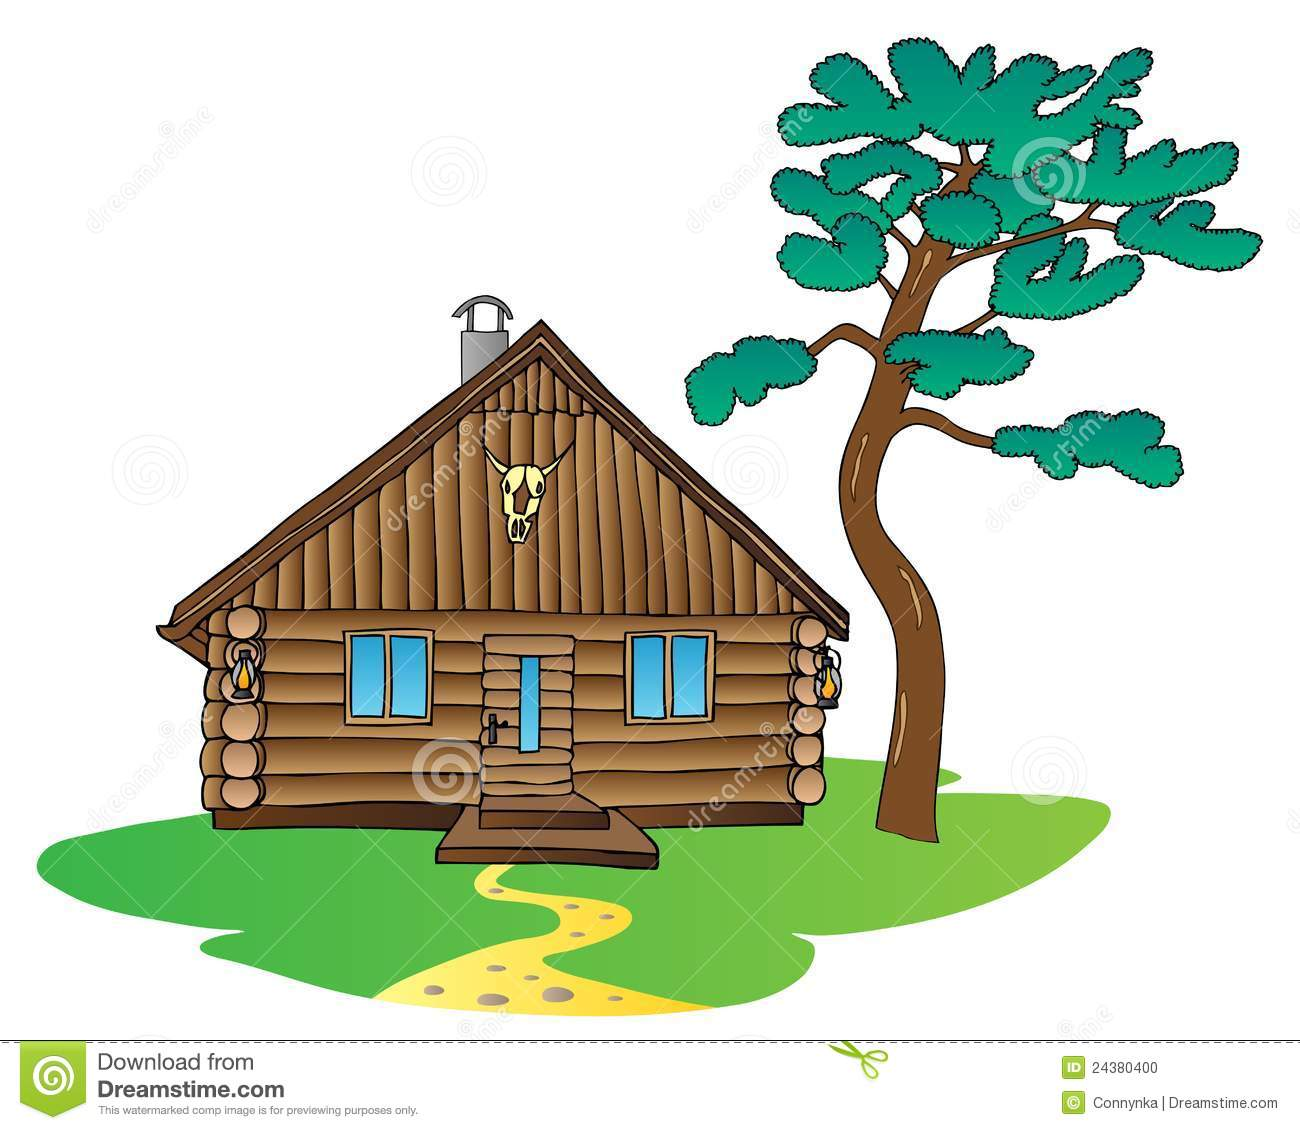 Camping Cabin Clipart | Clipart Panda - Free Clipart Images